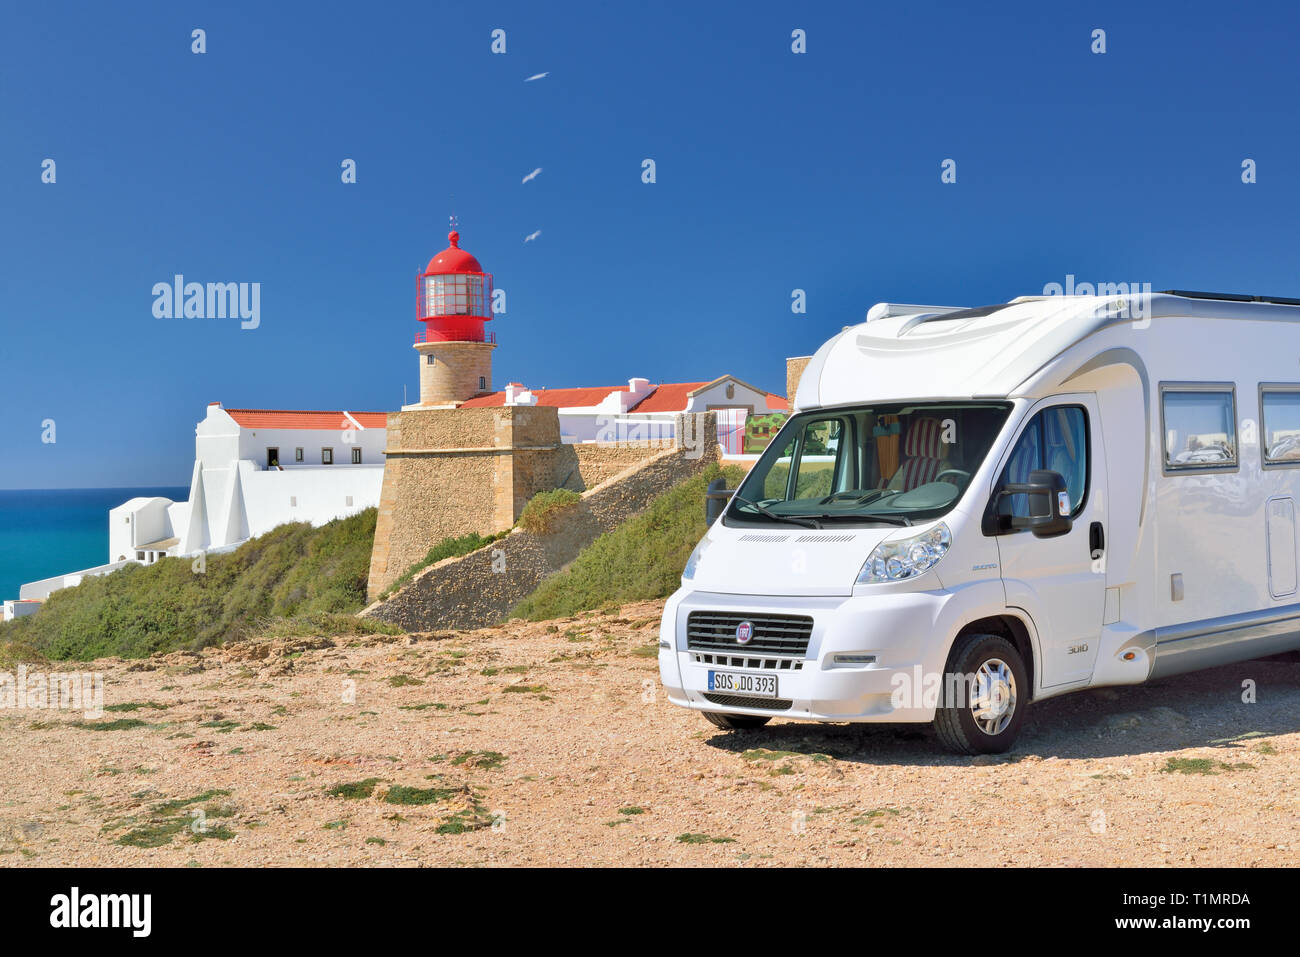 Motor home parking near red lighthouse with white washed building and baby blue sky on a sunny day Stock Photo